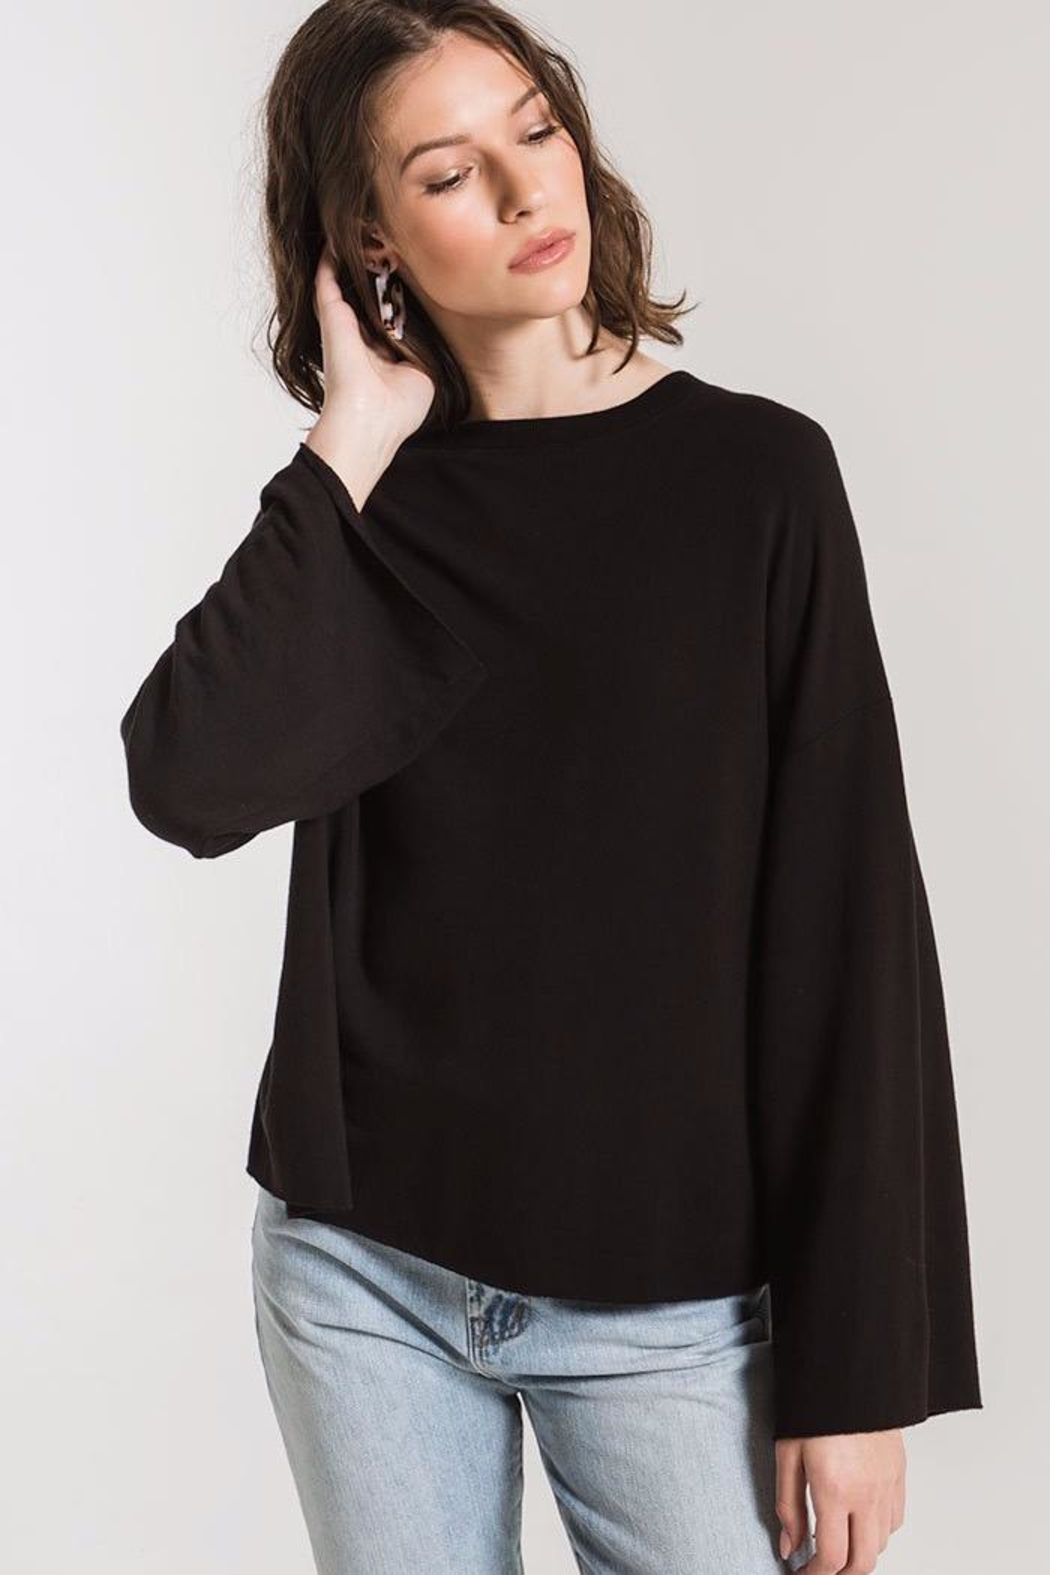 z supply Flare Sleeve Pullover - Side Cropped Image